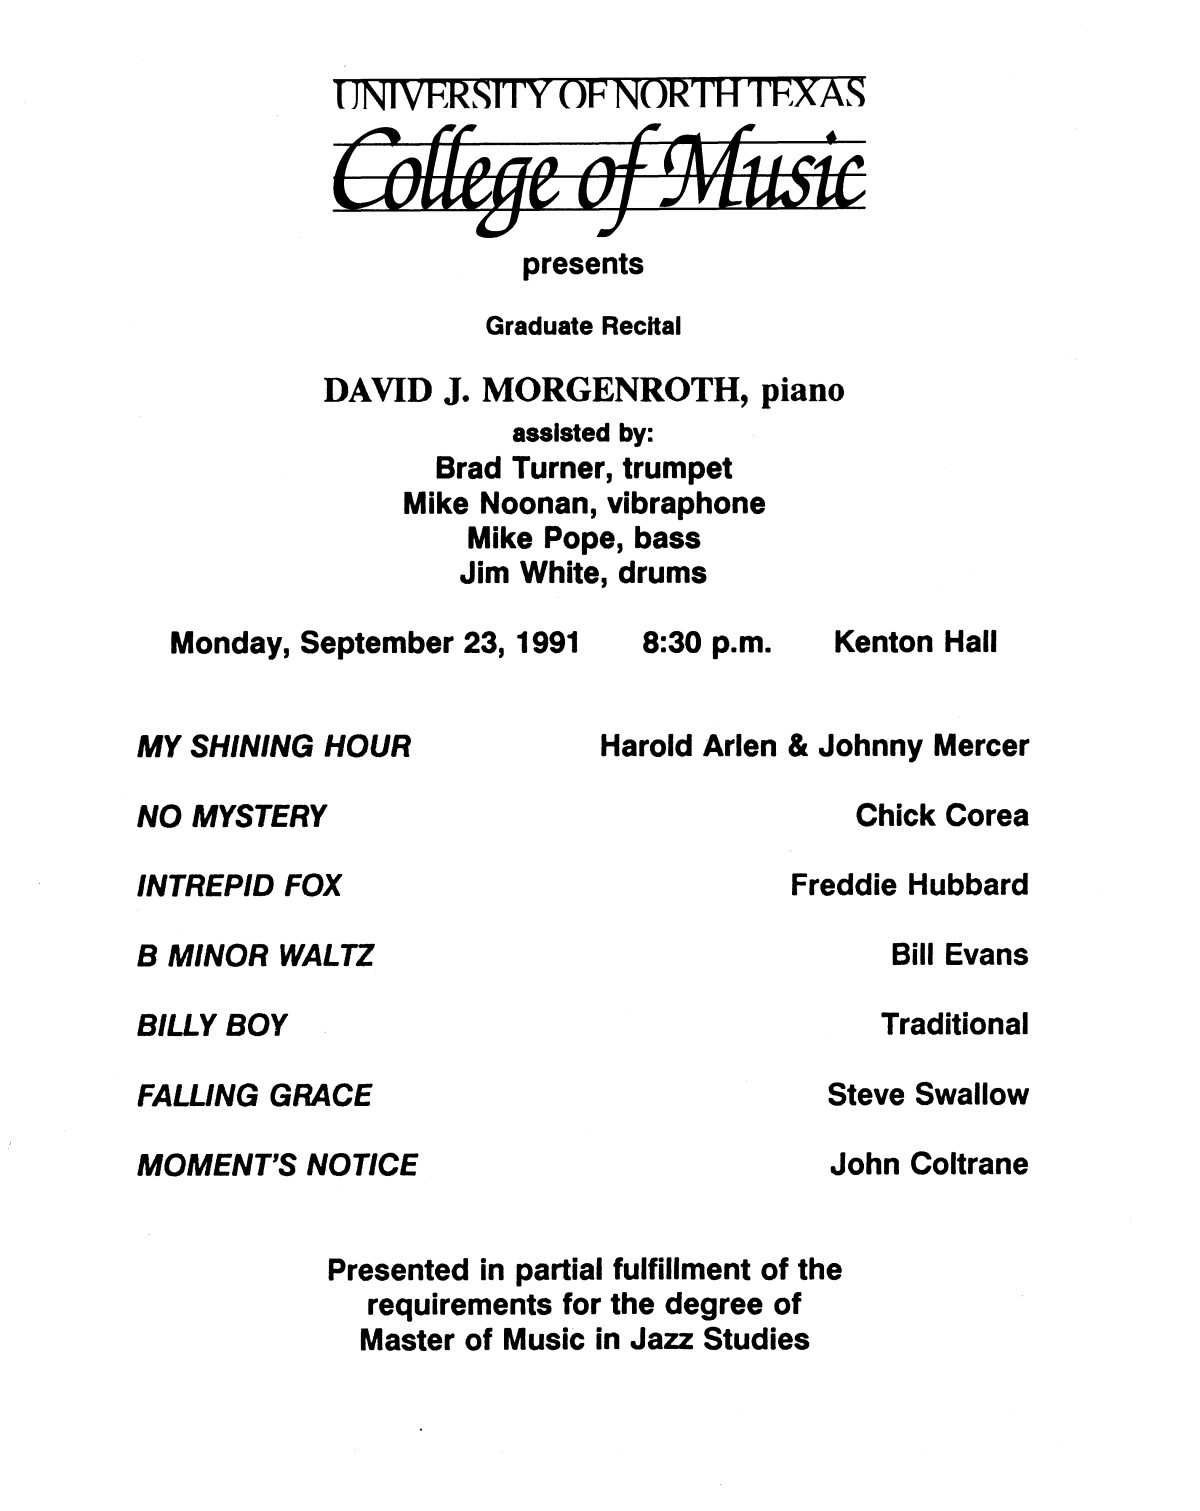 College of Music program book 1991-1992 Student Performances Vol. 2                                                                                                      [Sequence #]: 11 of 310